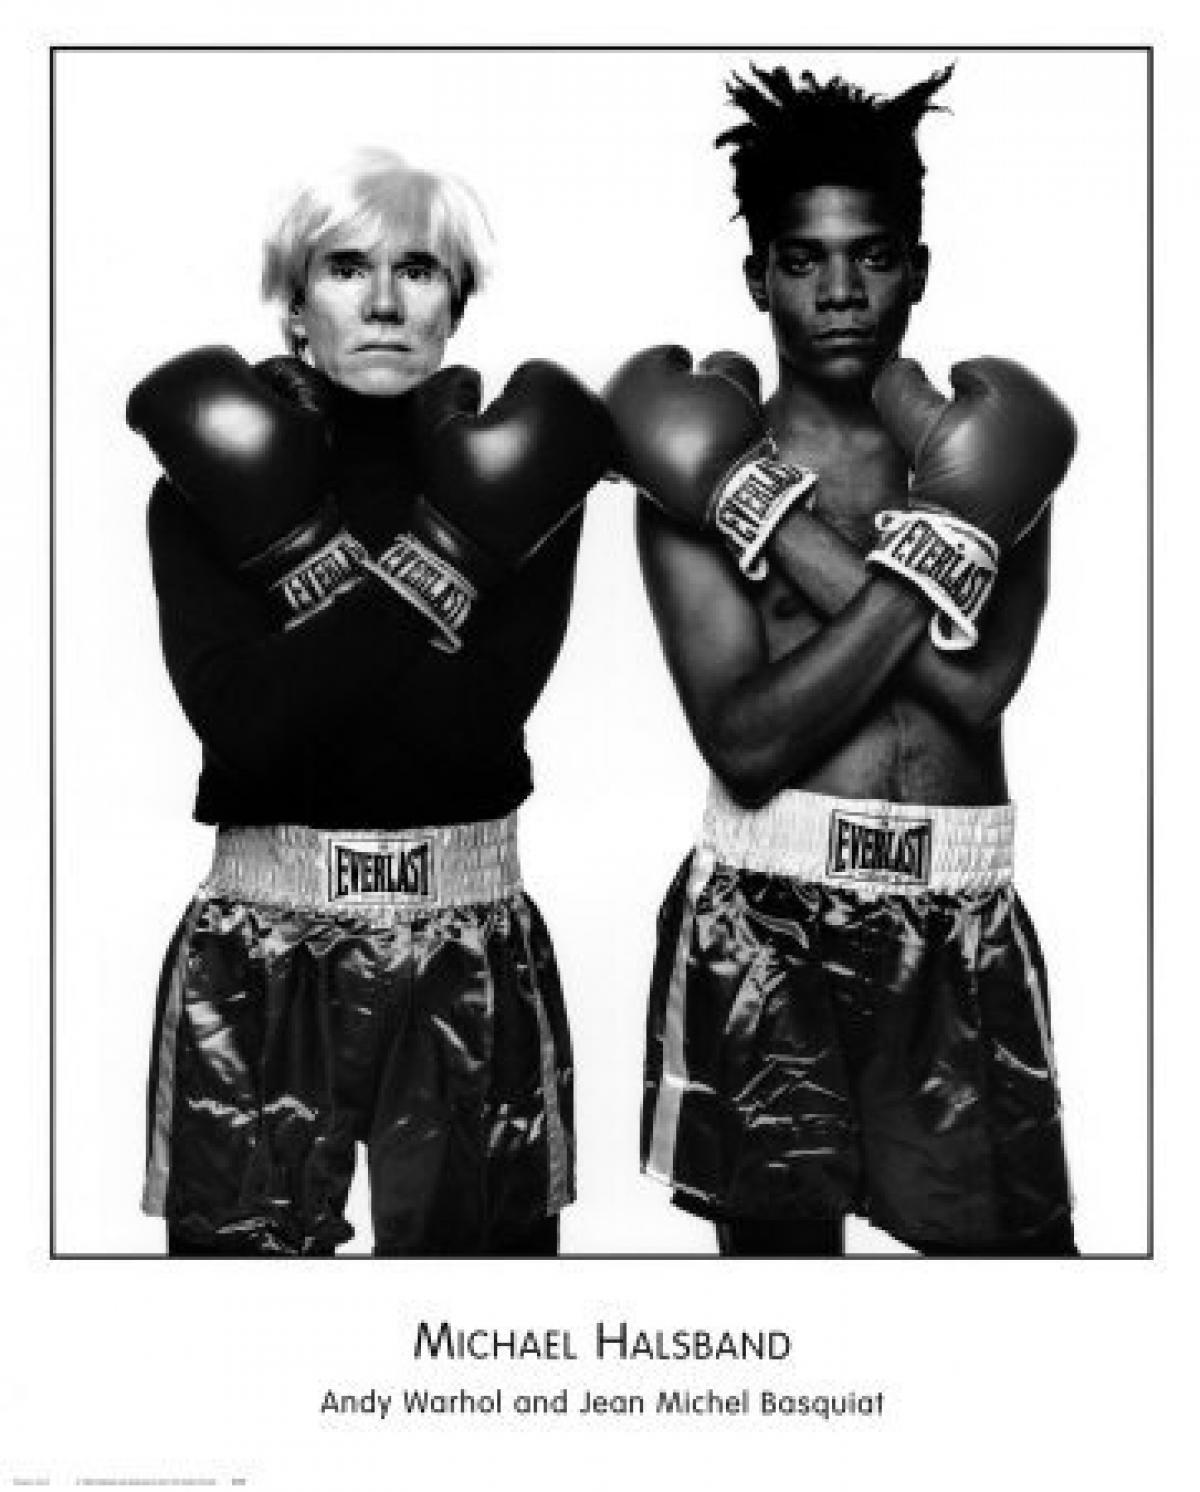 Jean-Michel Basquiat and Andy Warhol boxing photograph The Mantle